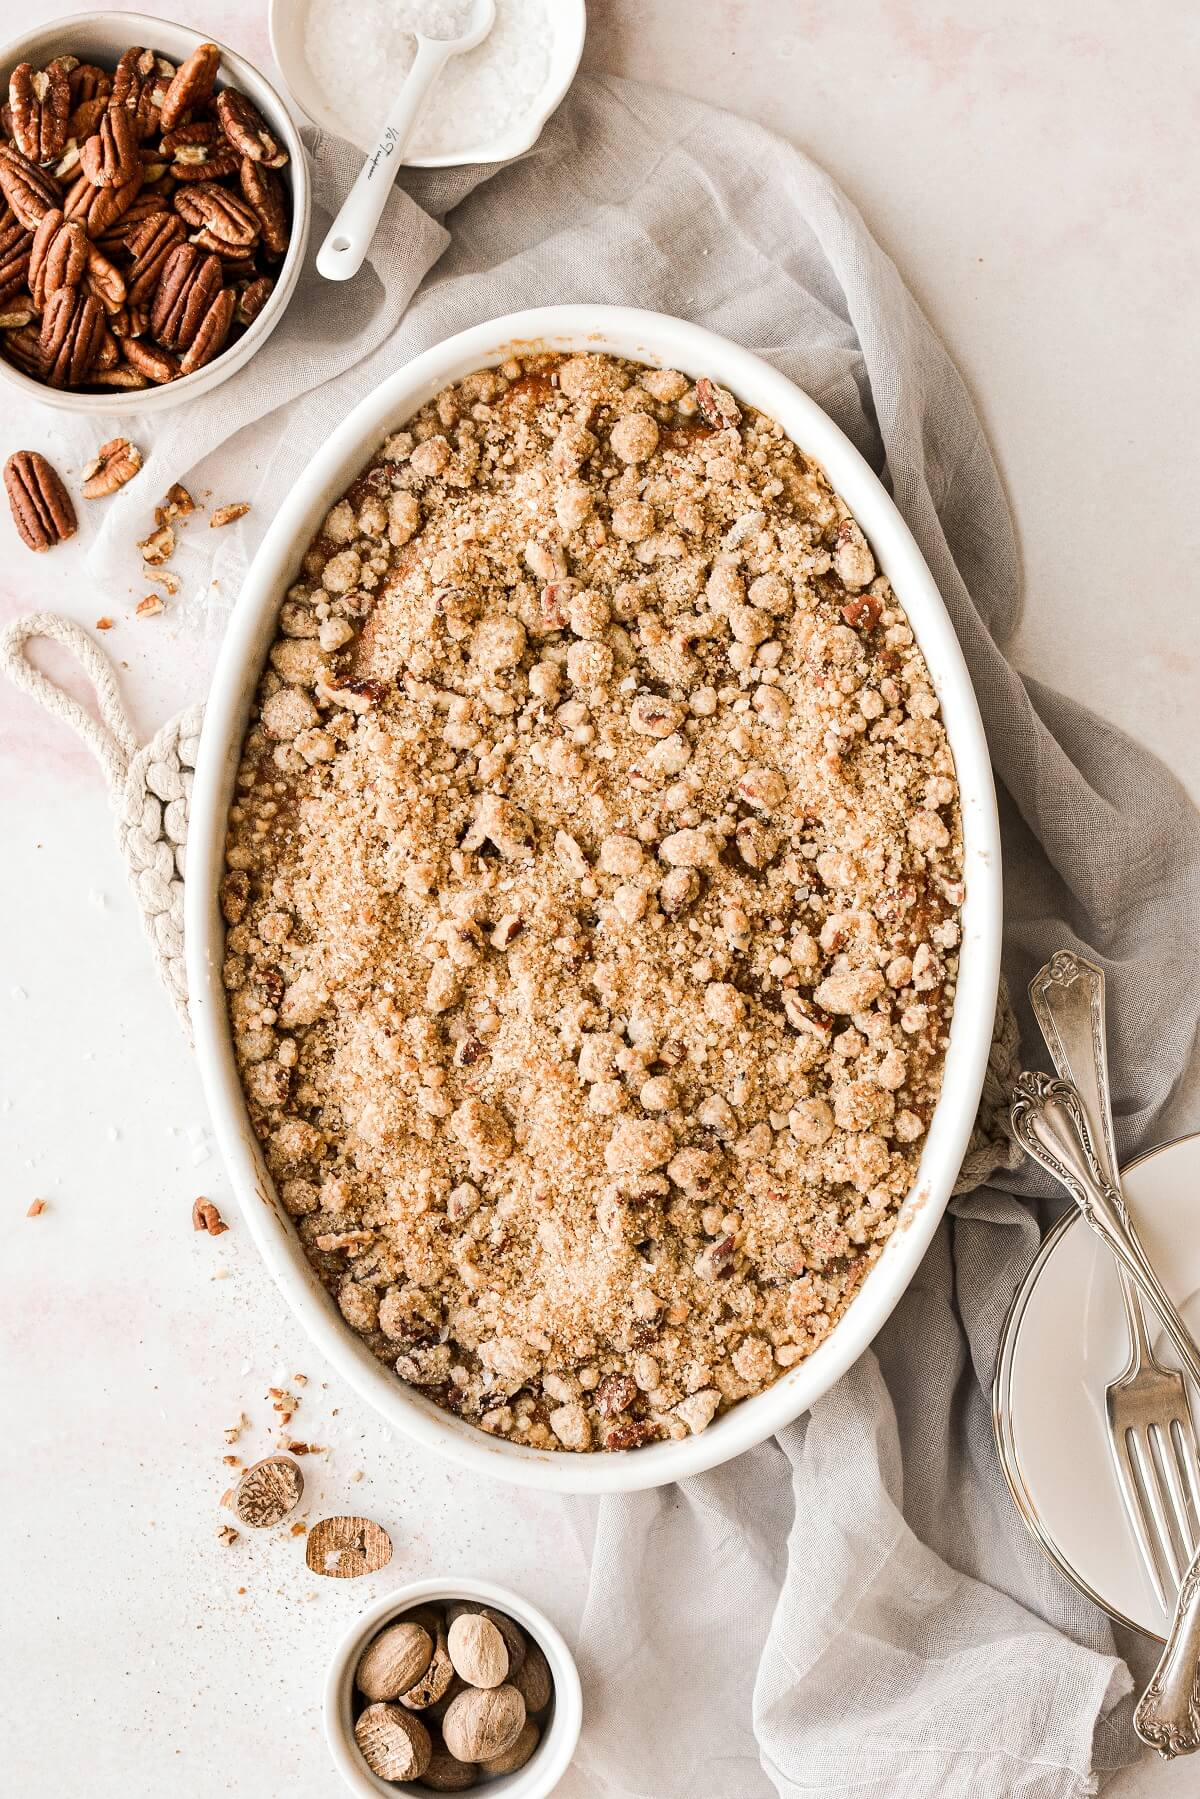 Sweet potato casserole with brown sugar pecan streusel crumb topping, baked in an oval baking dish.